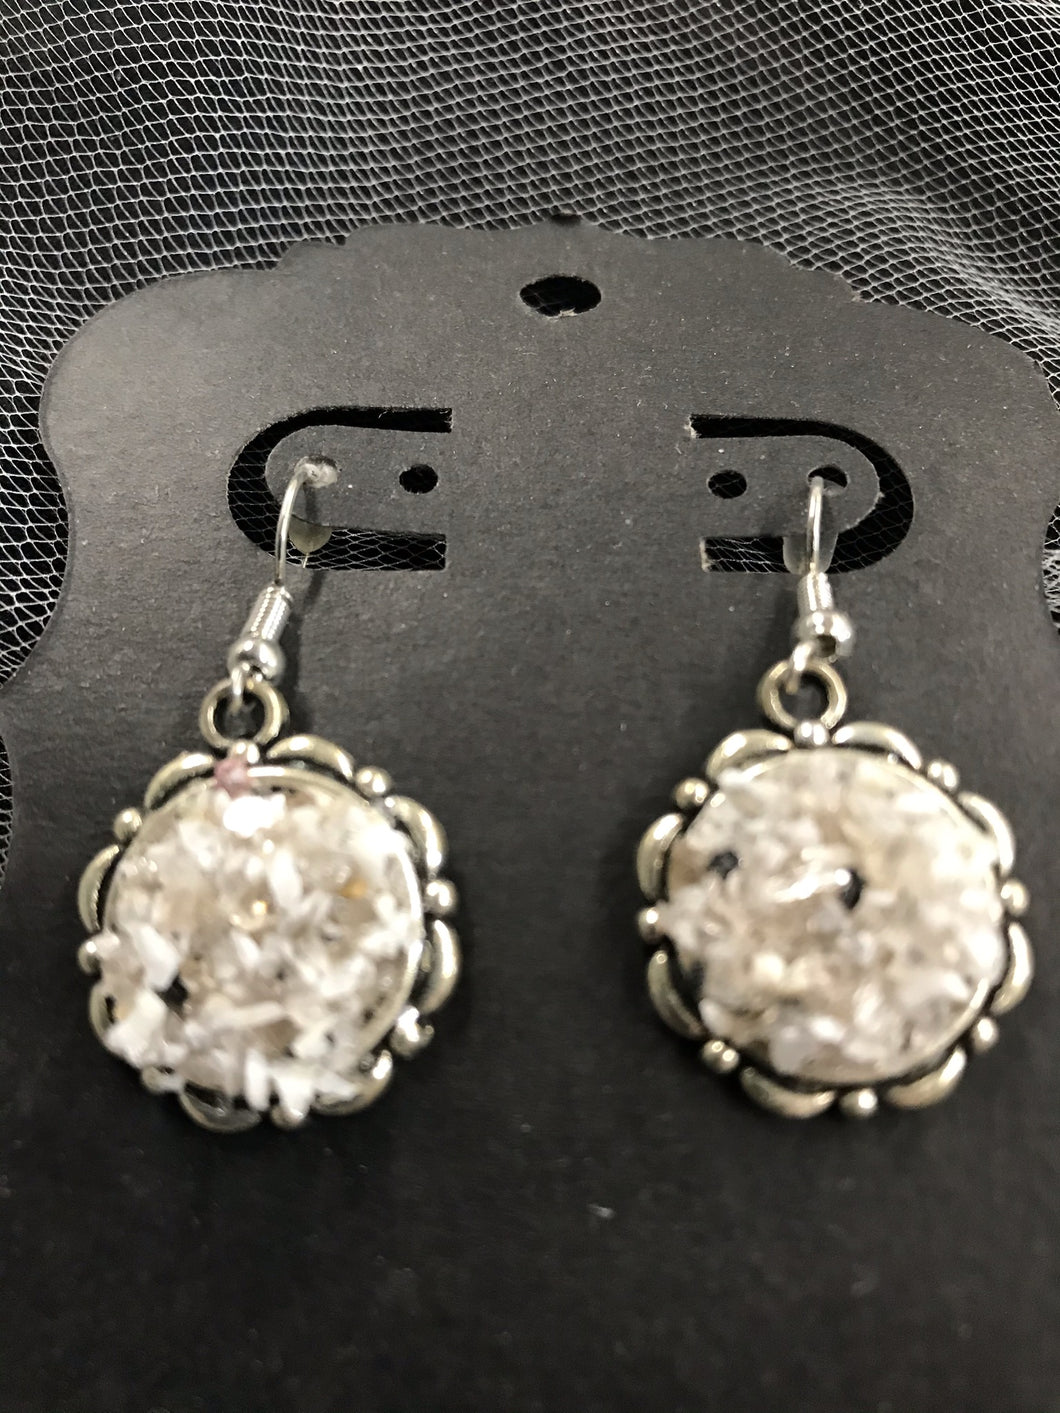 Dangling Earrings w/ Crushed Recycled Granite Mica